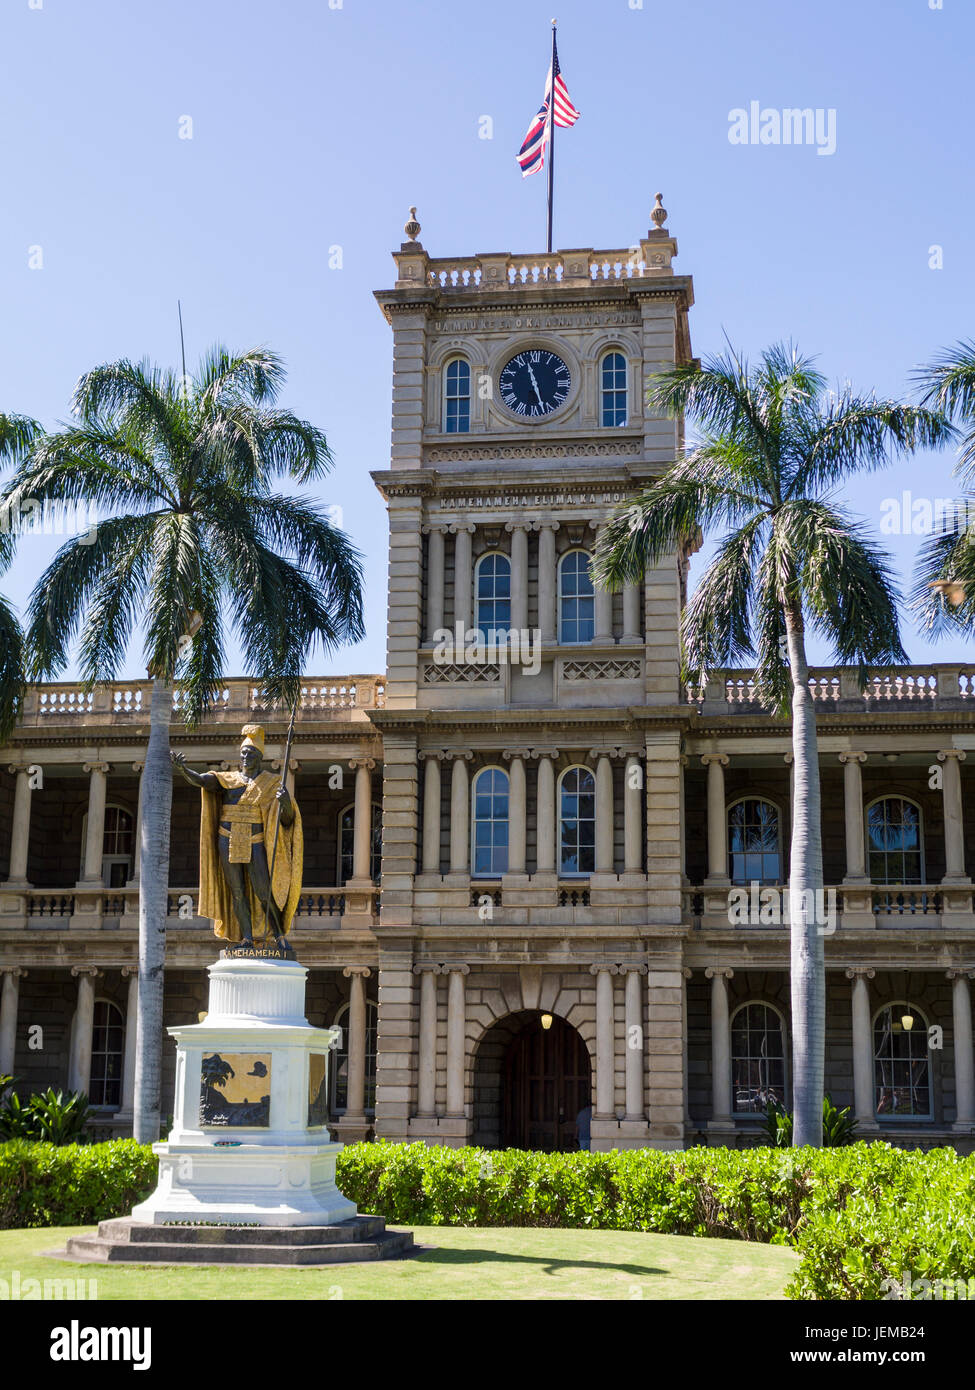 Kamehameha I statue in Honolulu: Clock tower of the old Judiciary Building is enscribed in Hawaiian: Ua Mau Ke Ea - Stock Image